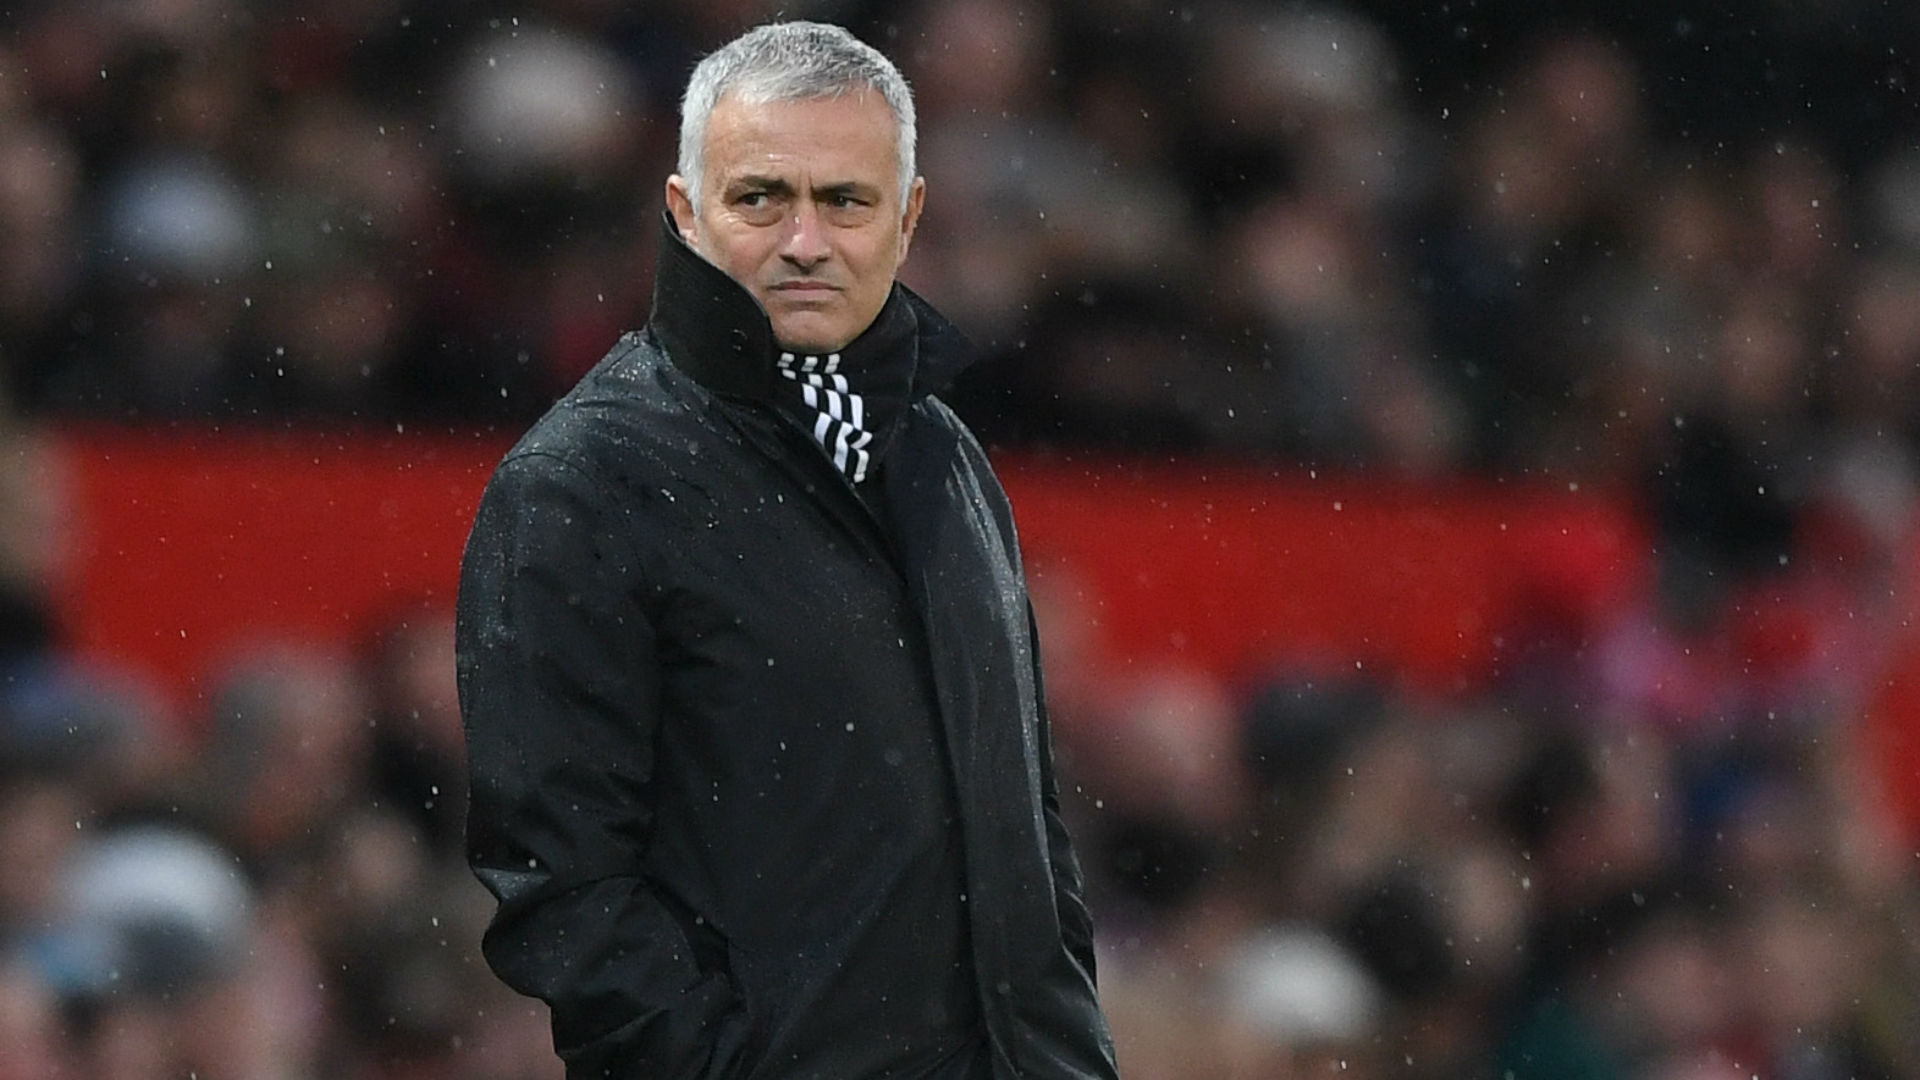 Lyon coach Genesio would be 'honoured' to be succeeded by Mourinho